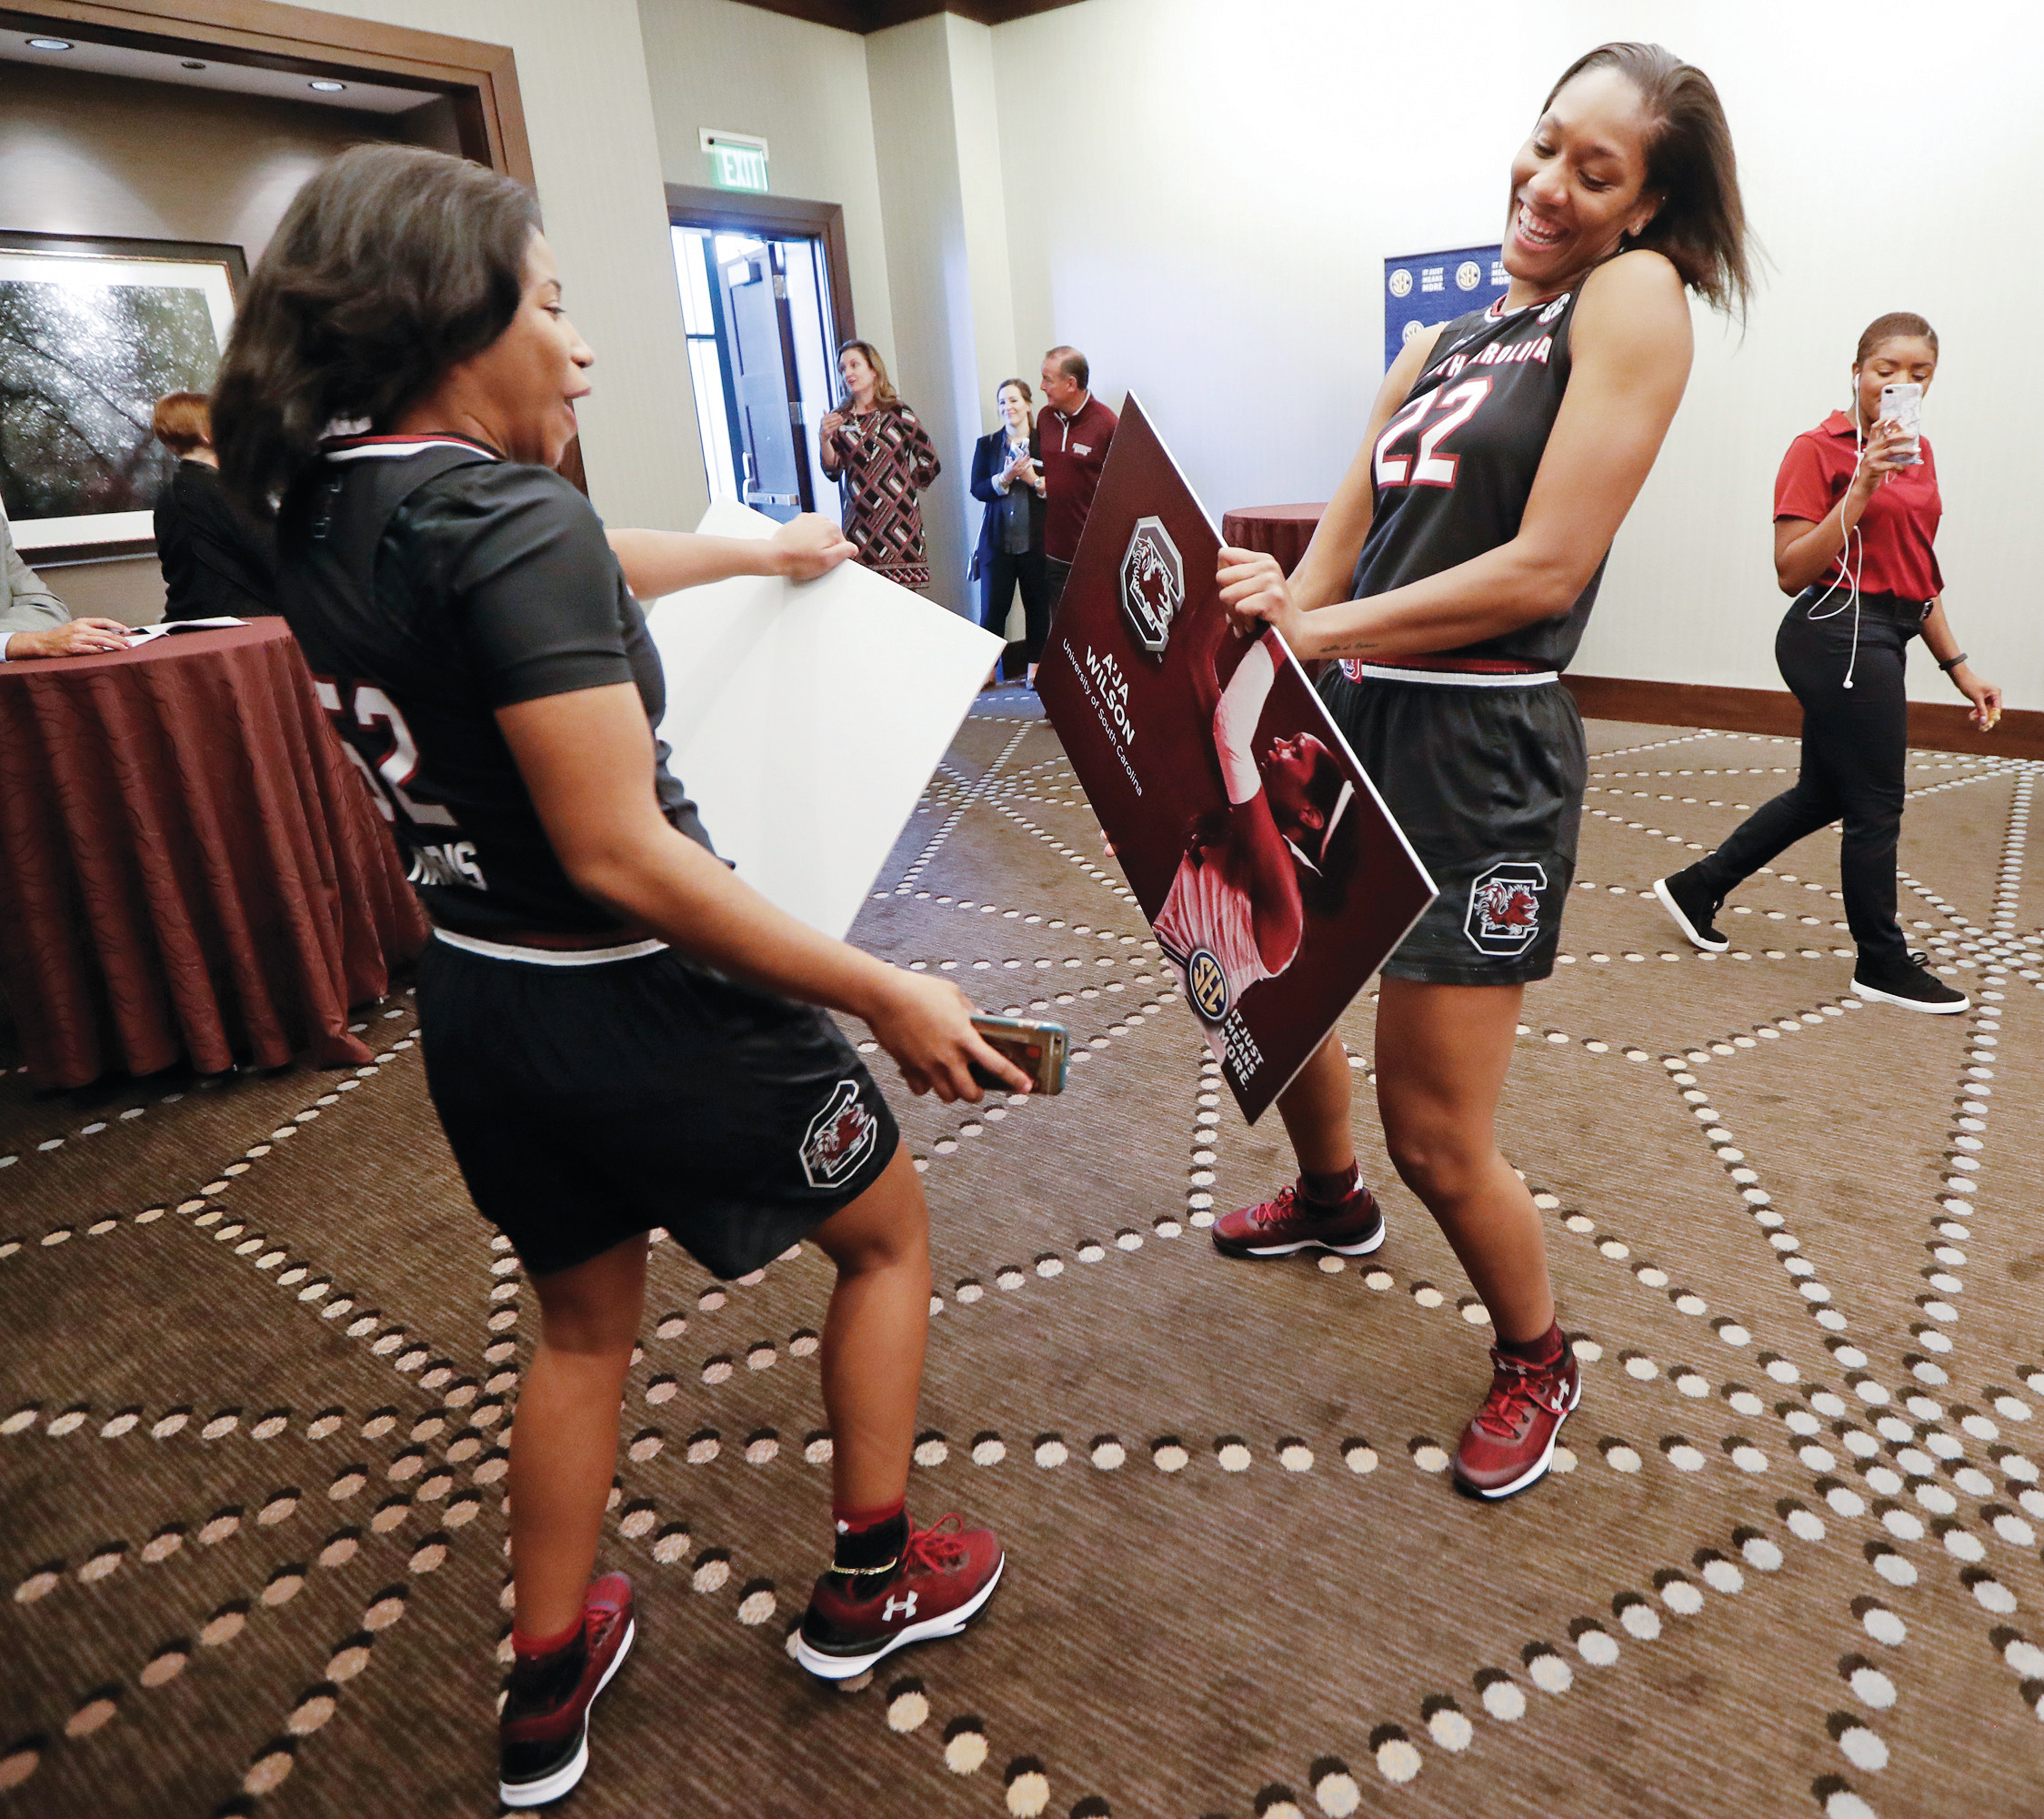 South Carolina players Tyasha Harris, left, and A'ja Wilson (22) dance while holding posters of themselves after finishing their news conference during the Southeastern Conference women's basketball media day on Thursday in Nashville, Tennessee.